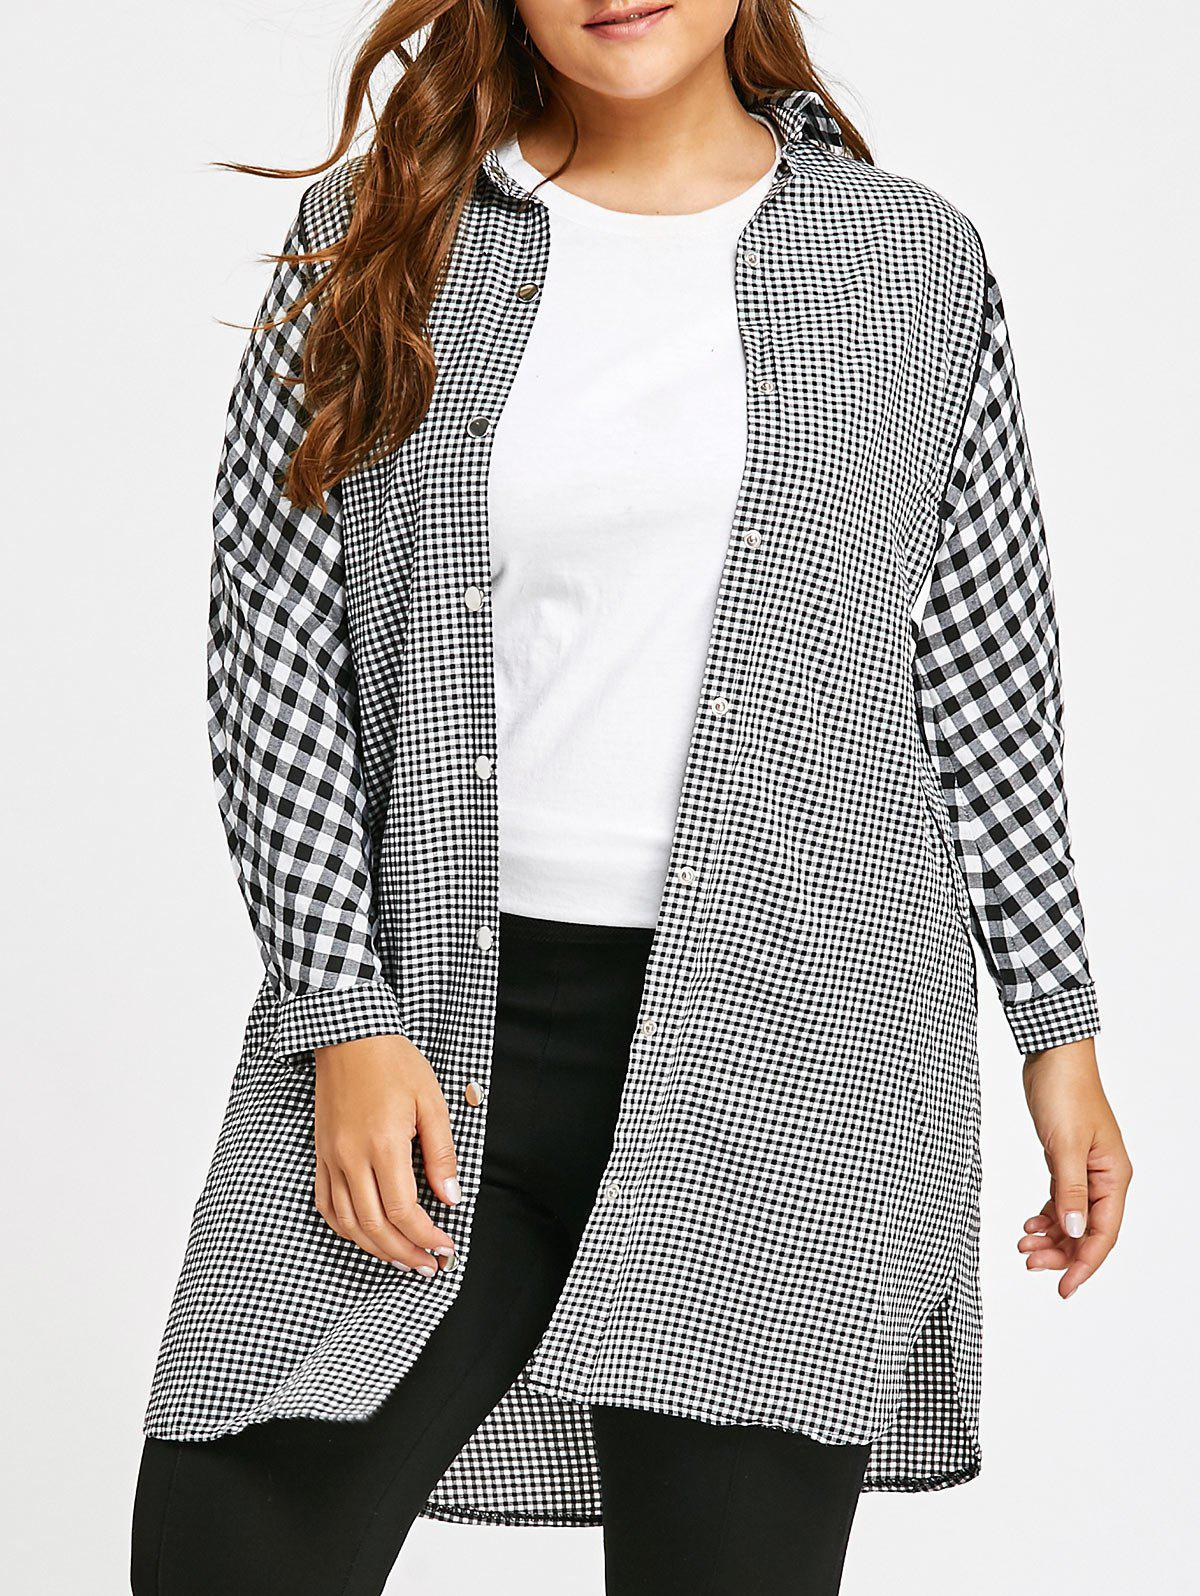 Long Plus Size Plaid Tunic ShirtWOMEN<br><br>Size: 5XL; Color: GRAY; Material: Cotton Blends,Polyester; Shirt Length: Long; Sleeve Length: Full; Collar: Shirt Collar; Style: Fashion; Season: Fall,Winter; Sleeve Type: Batwing Sleeve; Embellishment: Button; Pattern Type: Plaid; Weight: 0.3300kg; Package Contents: 1 x Shirt;